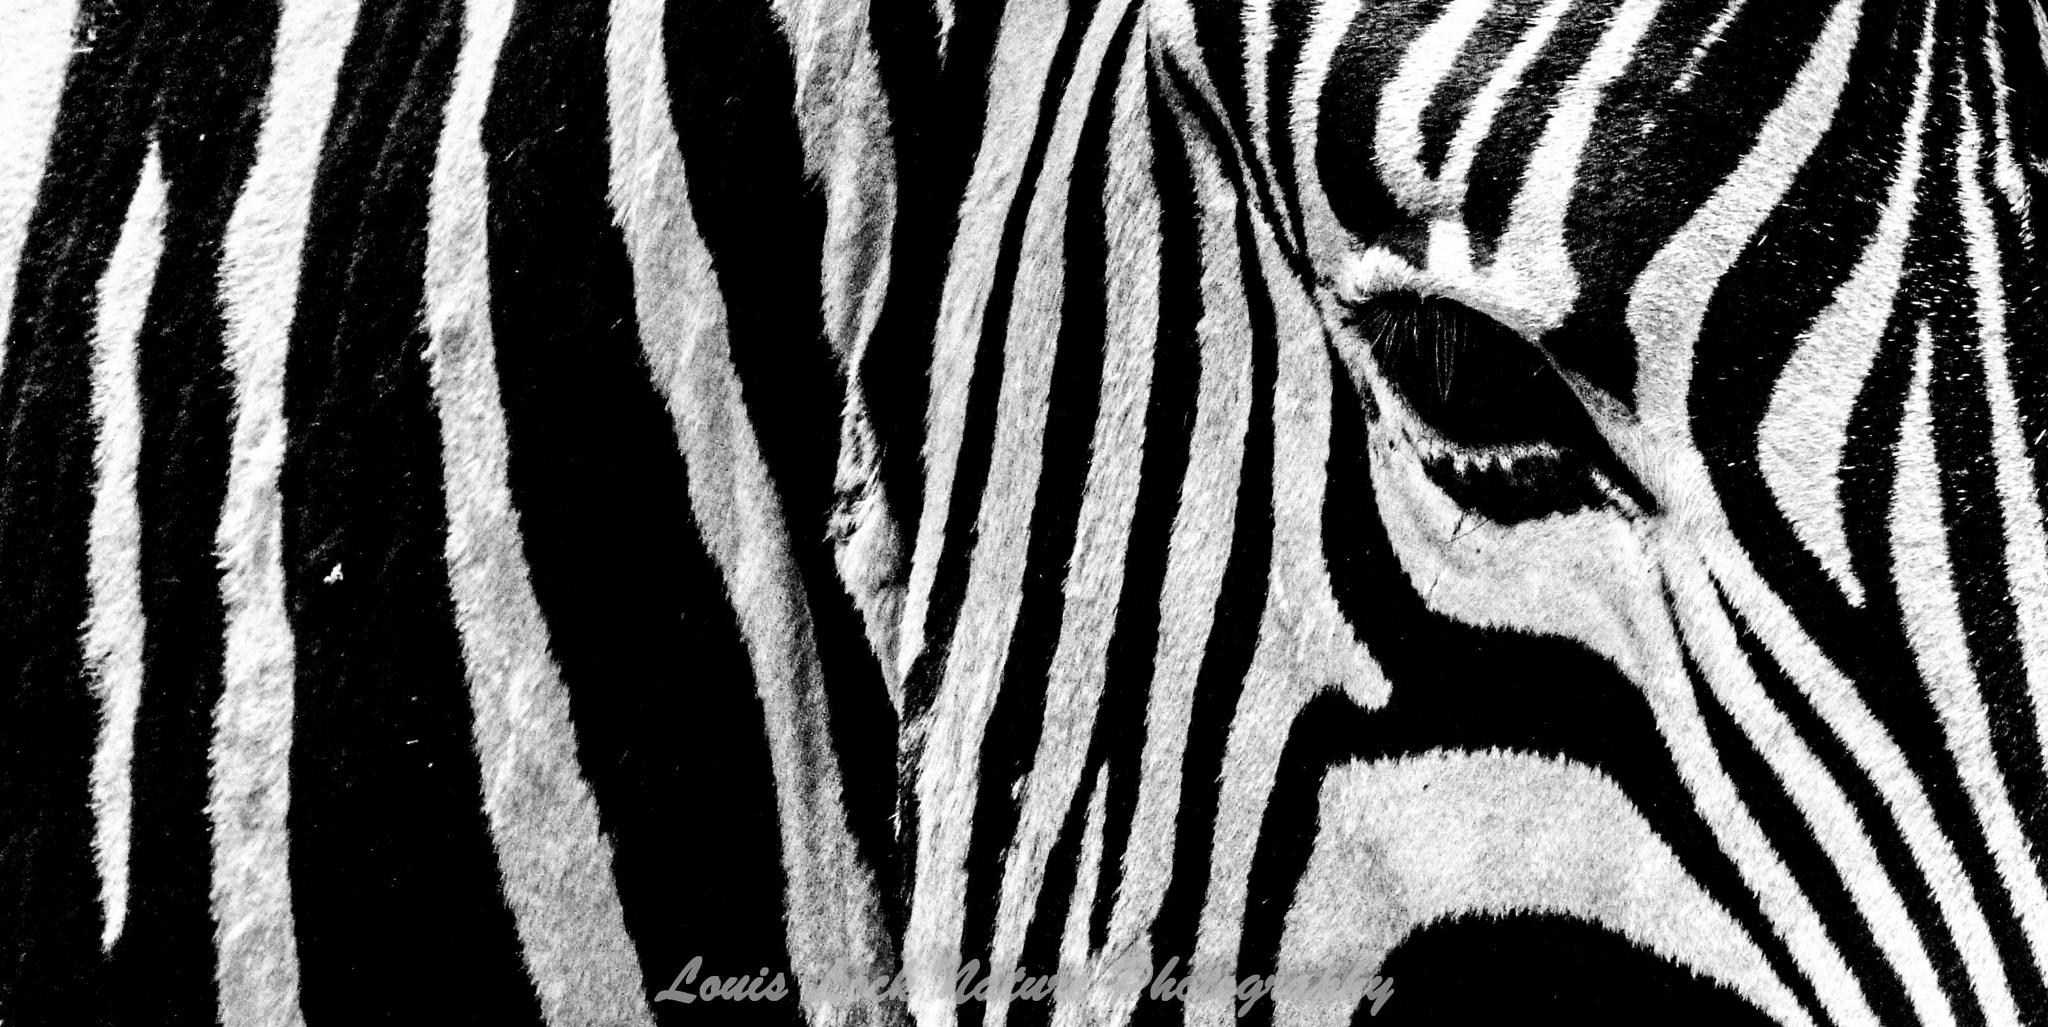 The Striped one by Louis Lock